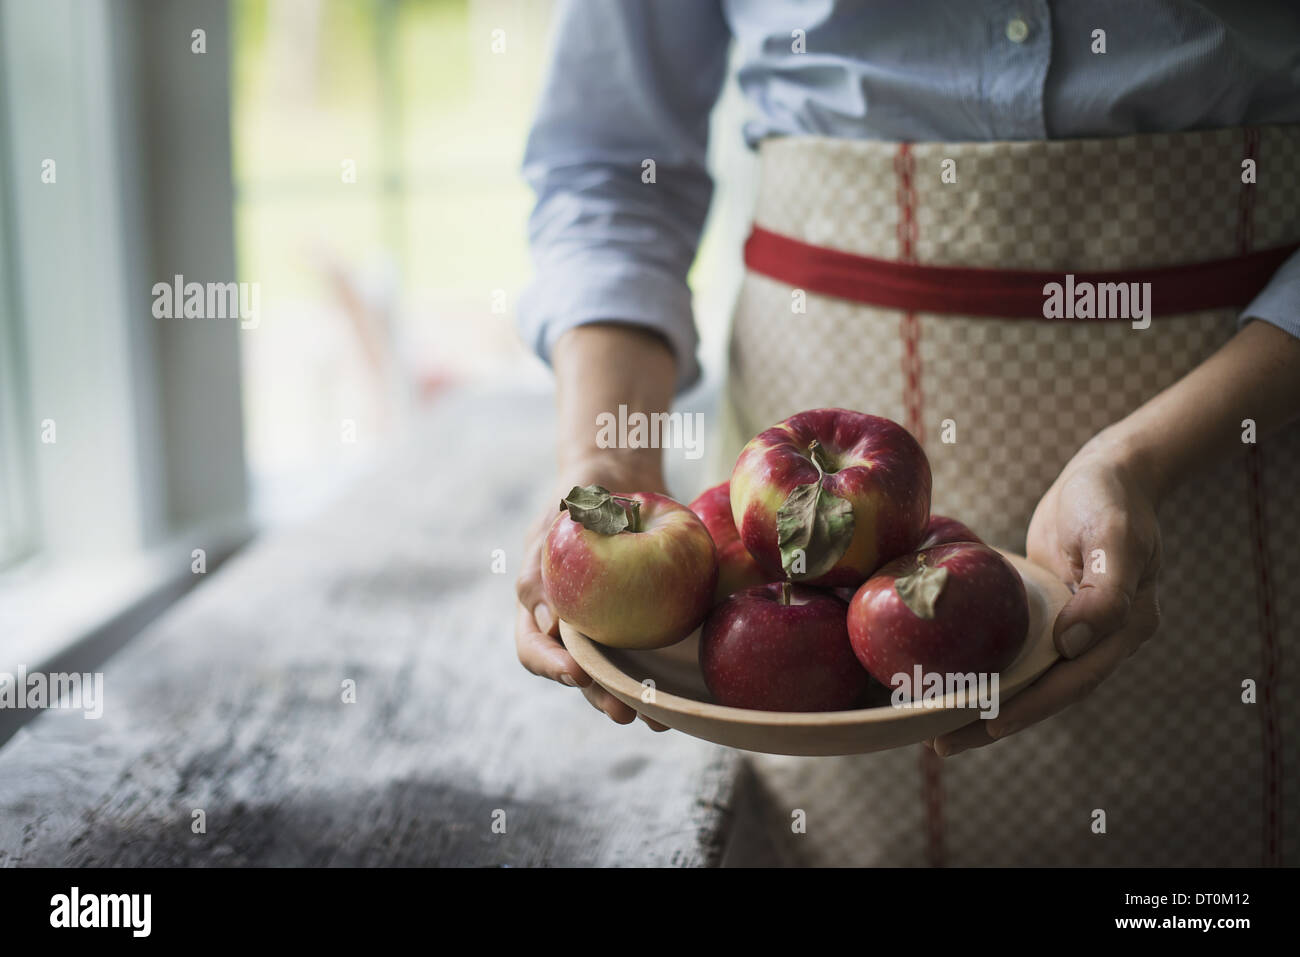 Woodstock New York USA person holding bowl of organic red skinned apples - Stock Image